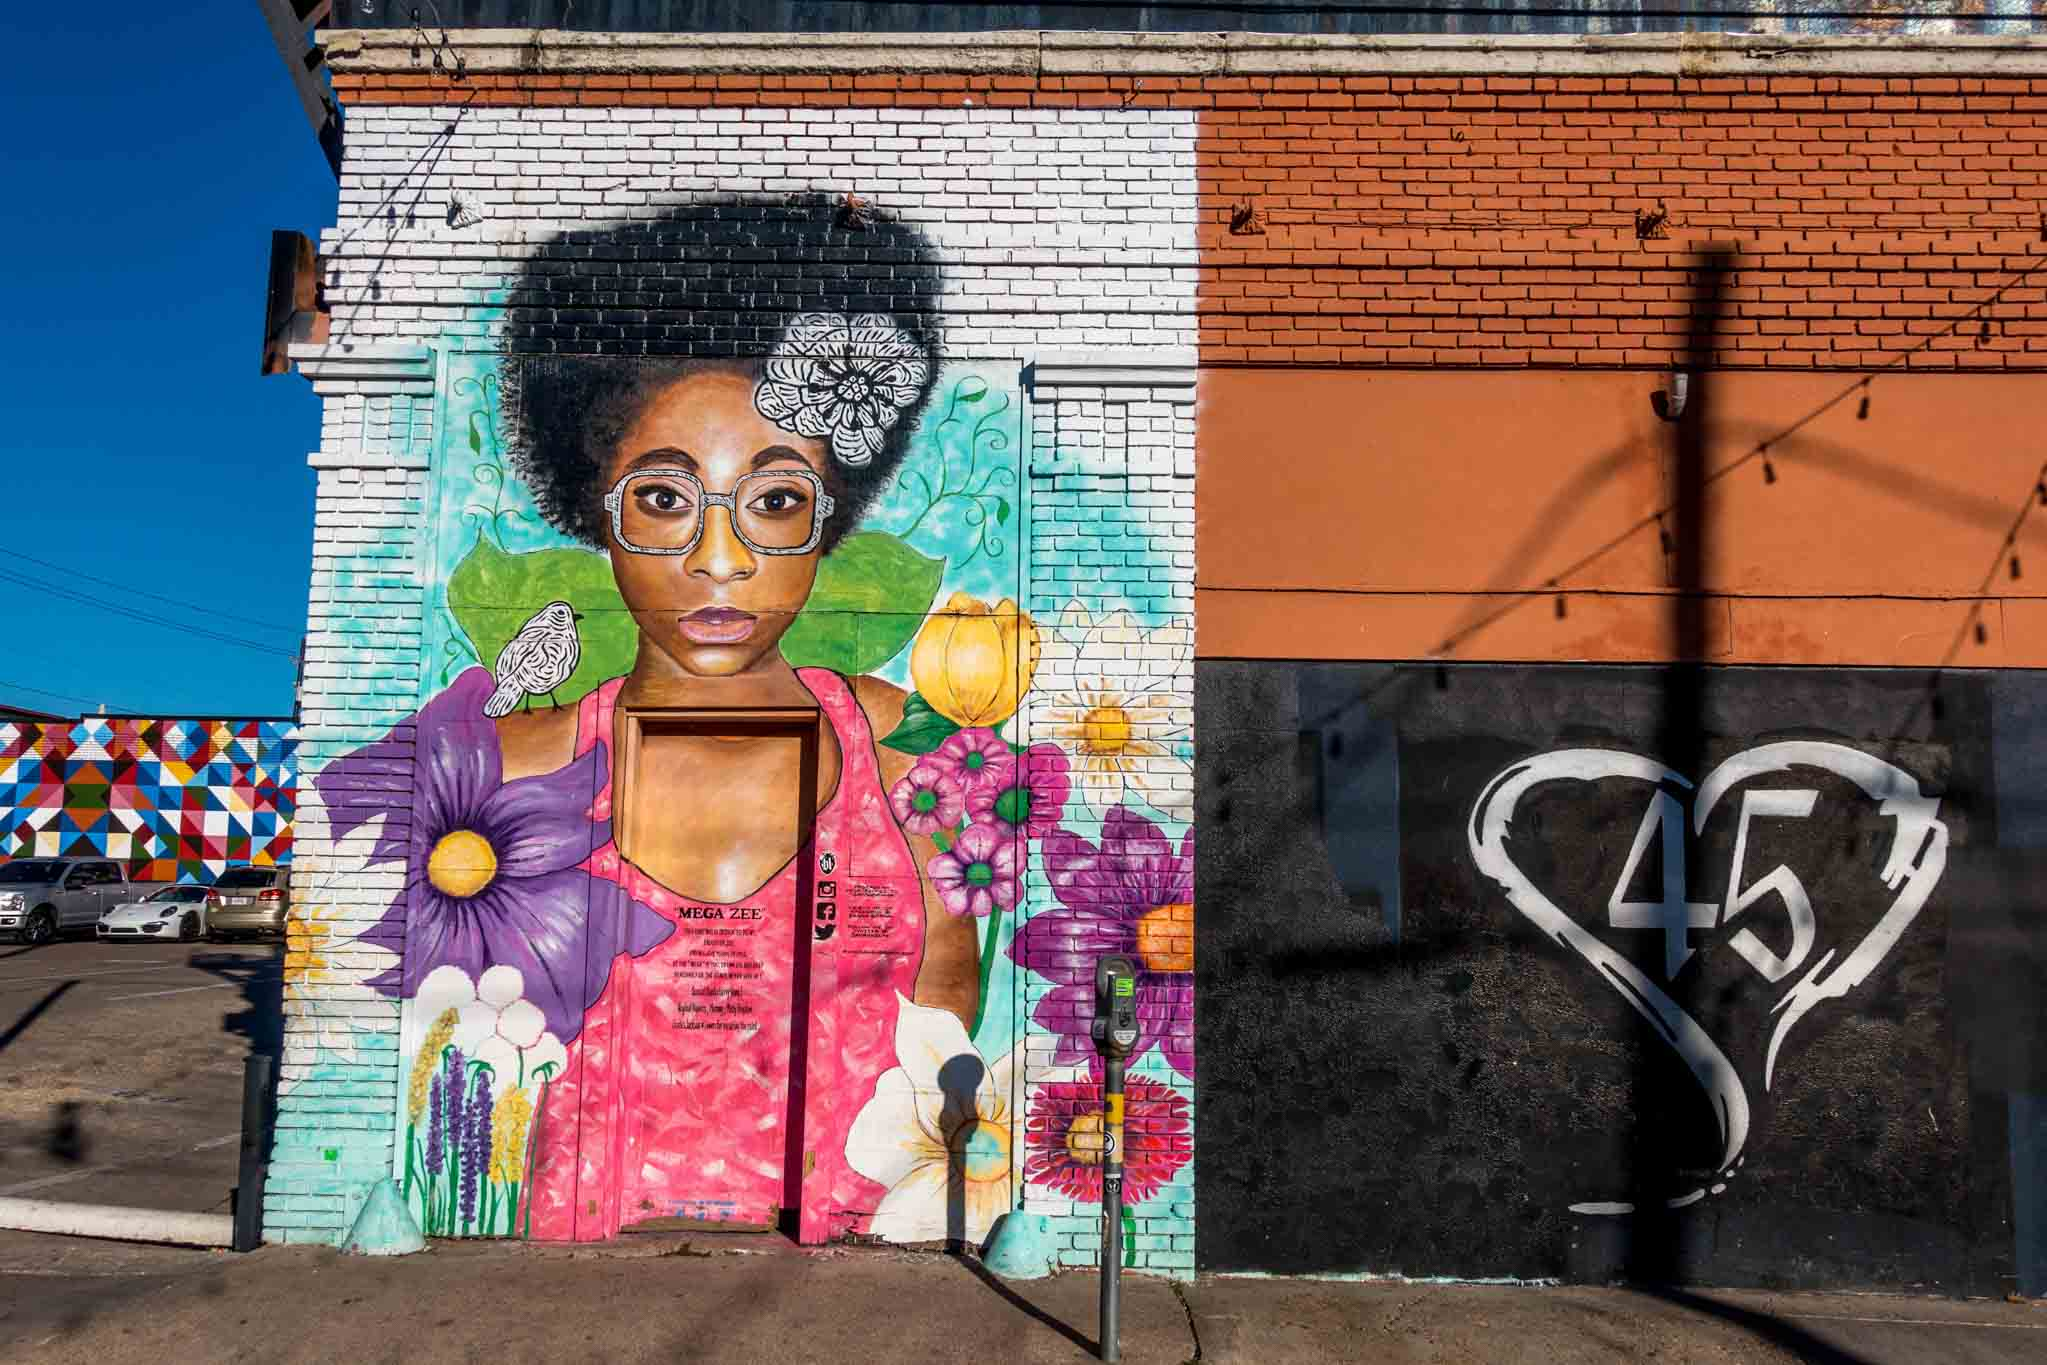 Street art showing a woman with bright flowers